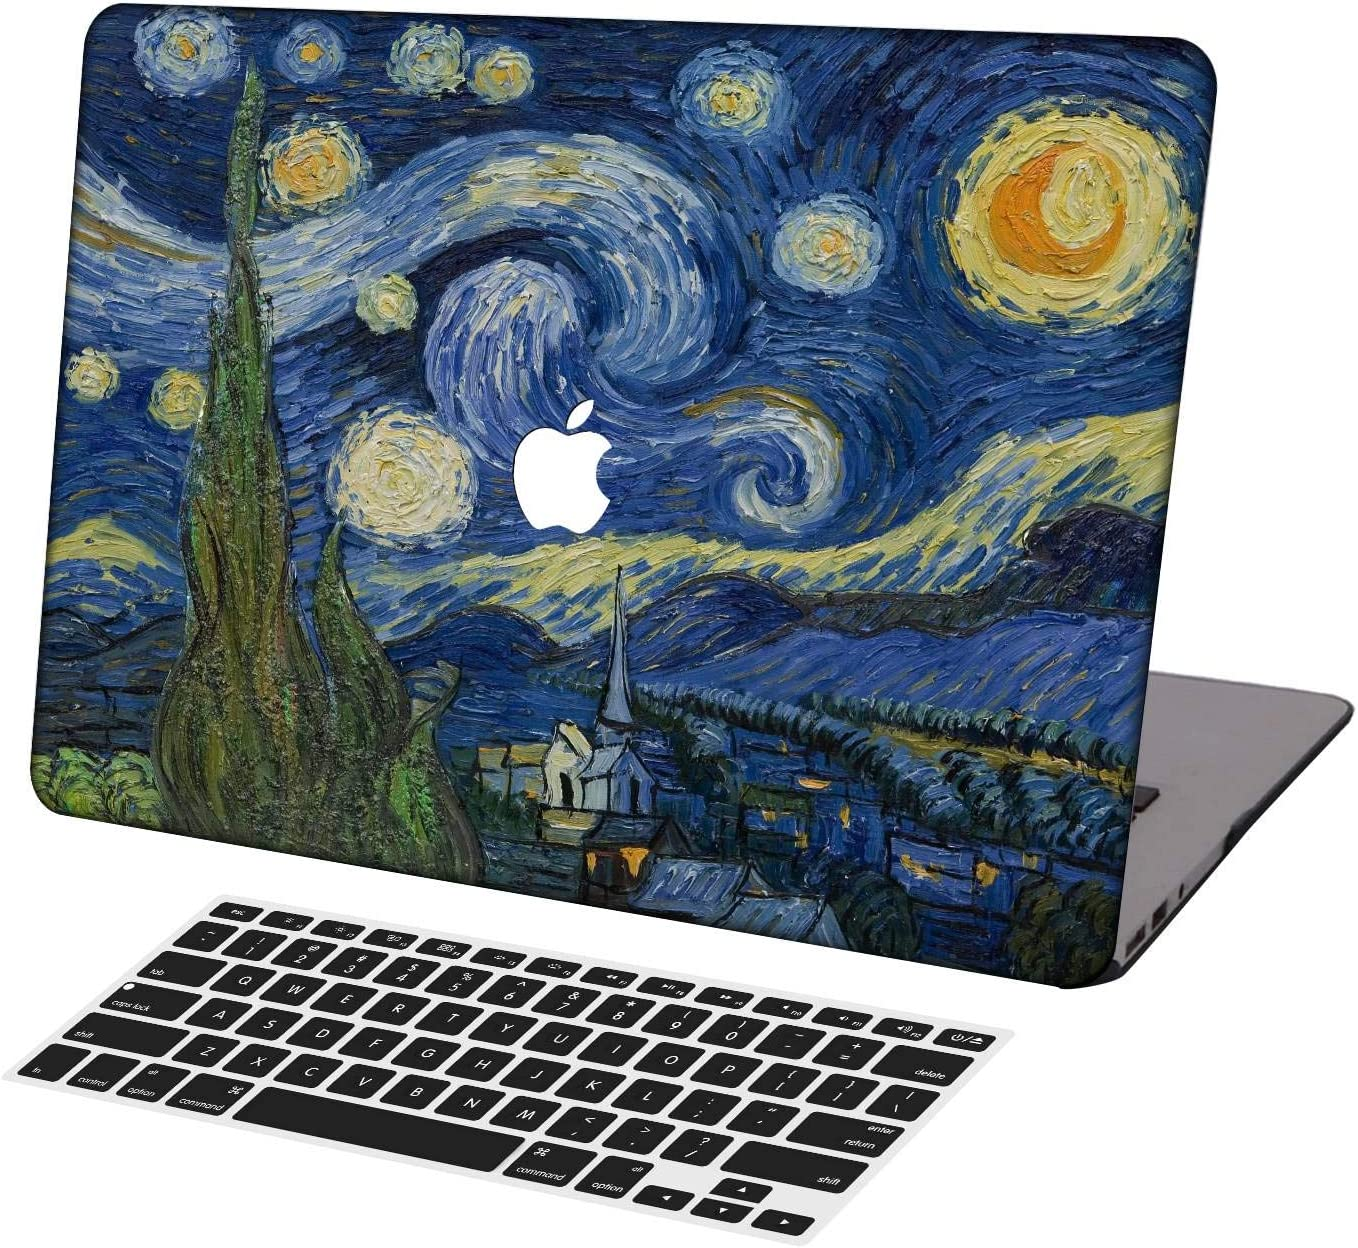 KSK KAISHEK Laptop Case for MacBook Air 13 inch Model A1932/A2179,Plastic Ultra Slim Light Hard Shell Case Cover Keyboard Cover Compatible MacBook Air 13 inch with Touch ID,Van Gogh Starry Night